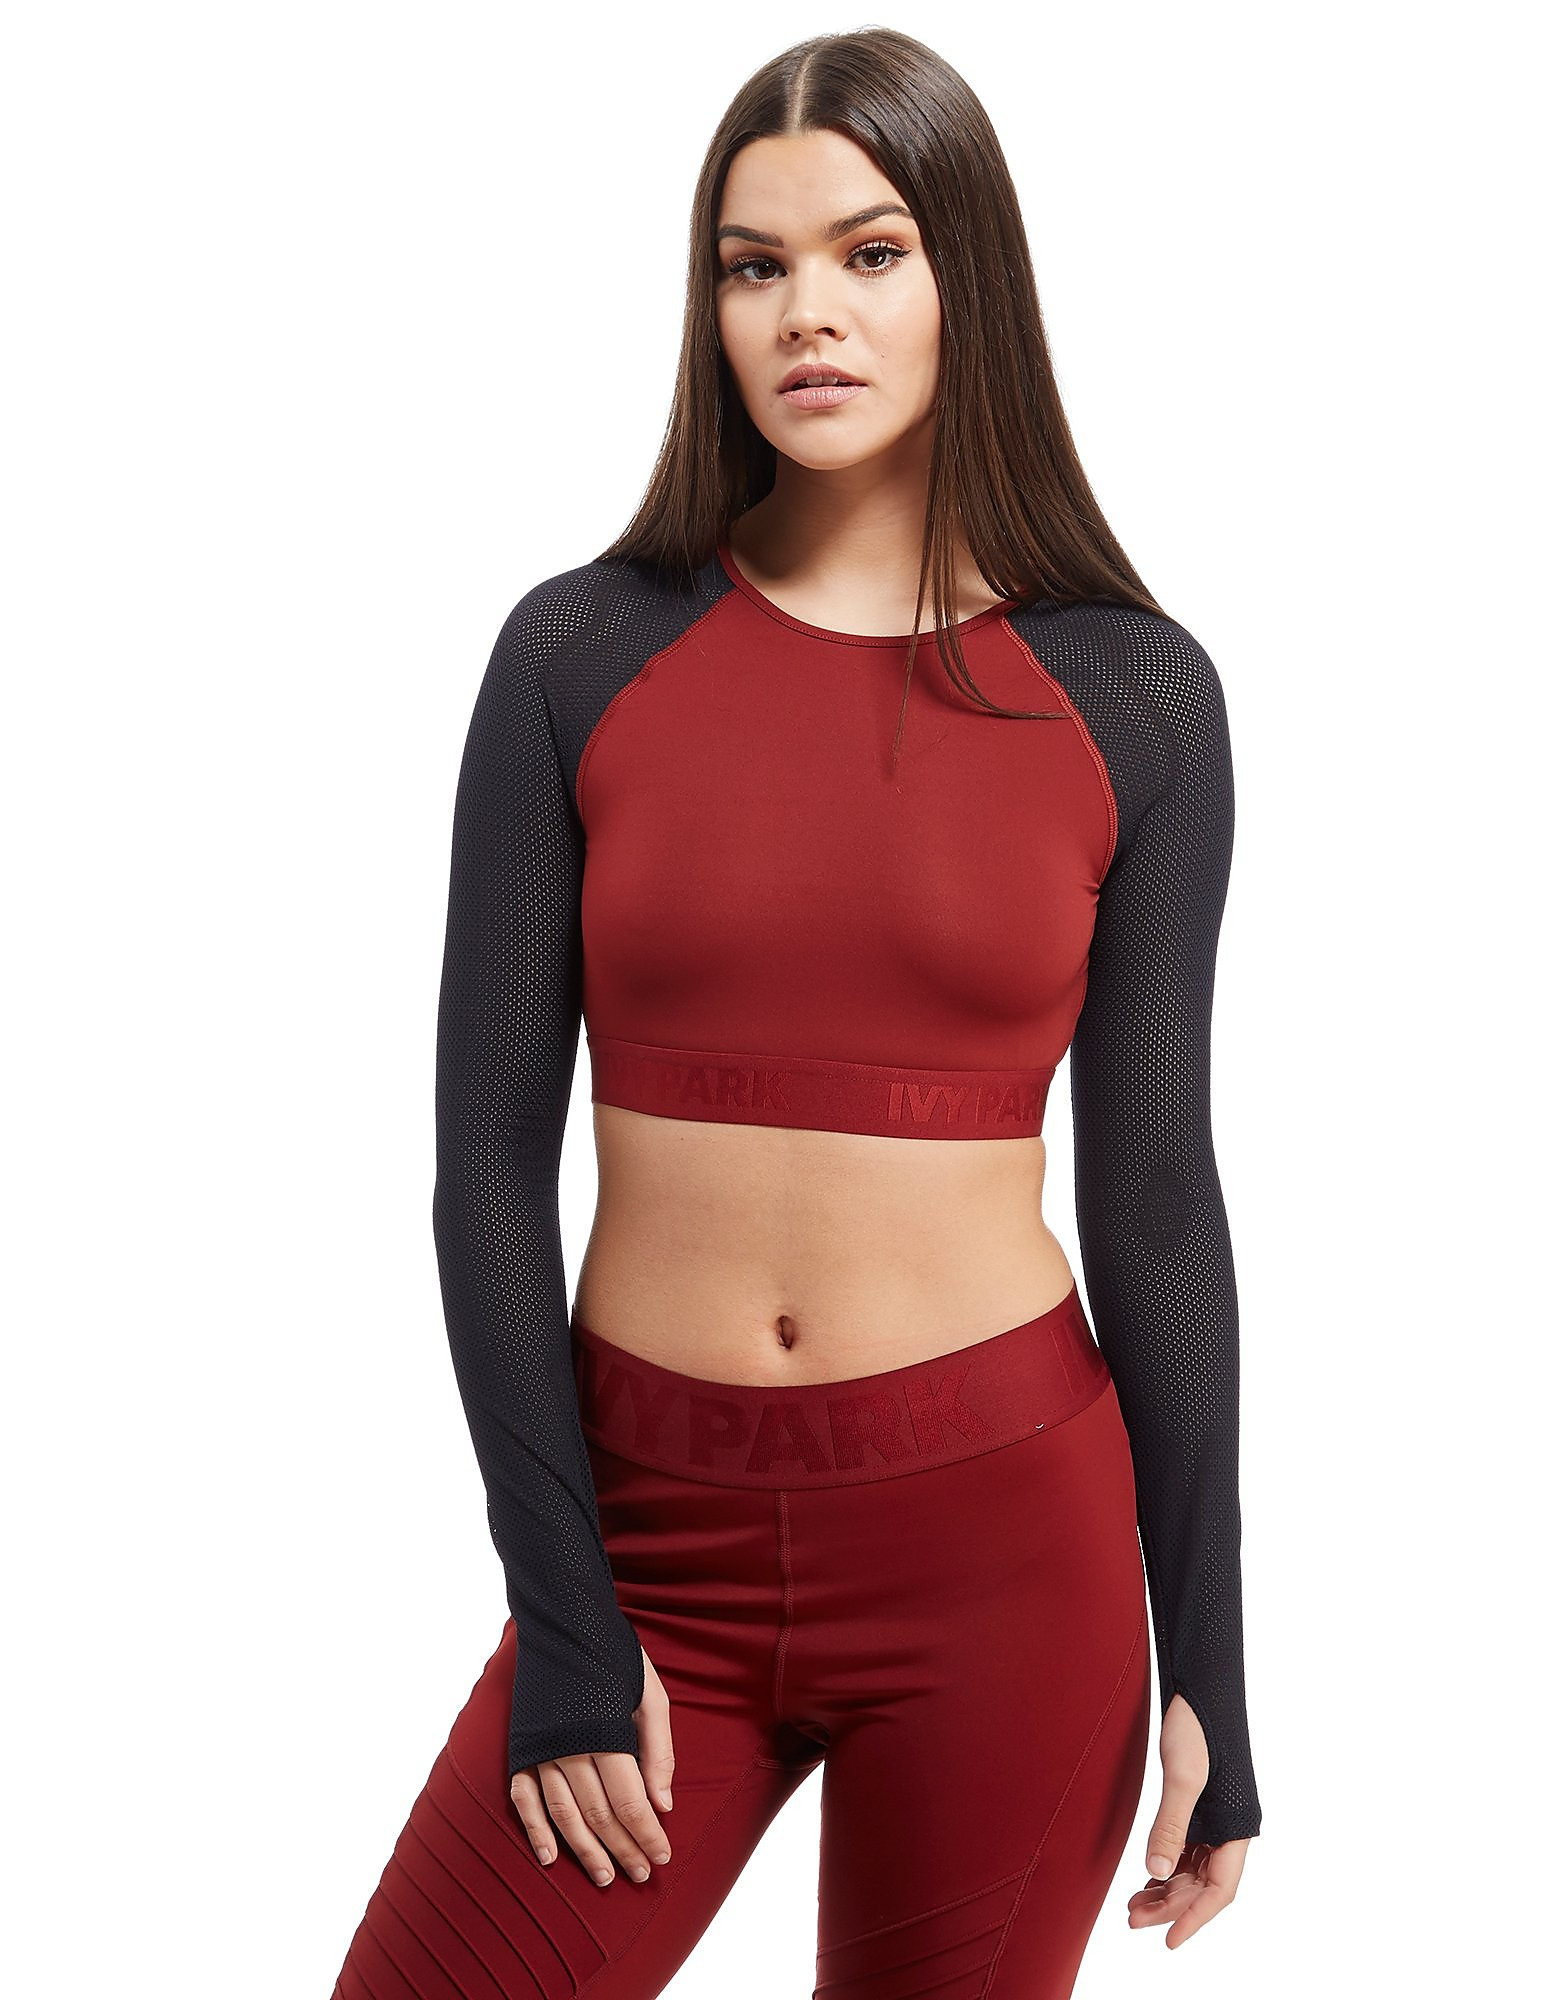 IVY PARK Tape Mesh Long Sleeve Crop Top